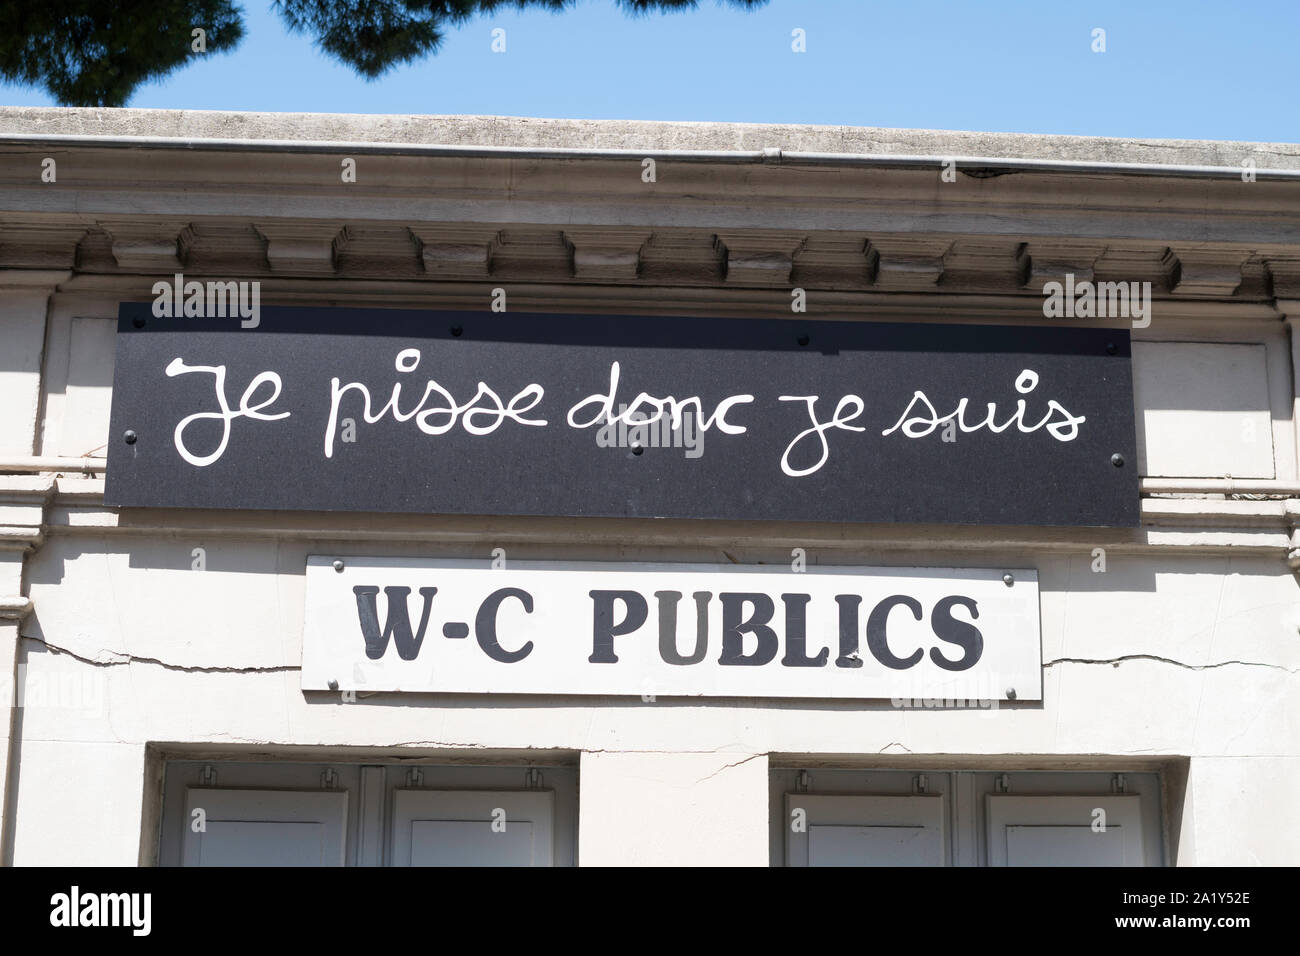 sign-on-public-toilet-by-artist-ben-vautier-je-pisse-donc-je-suis-i-piss-therefore-i-am-nice-france-europe-2A1Y52E.jpg